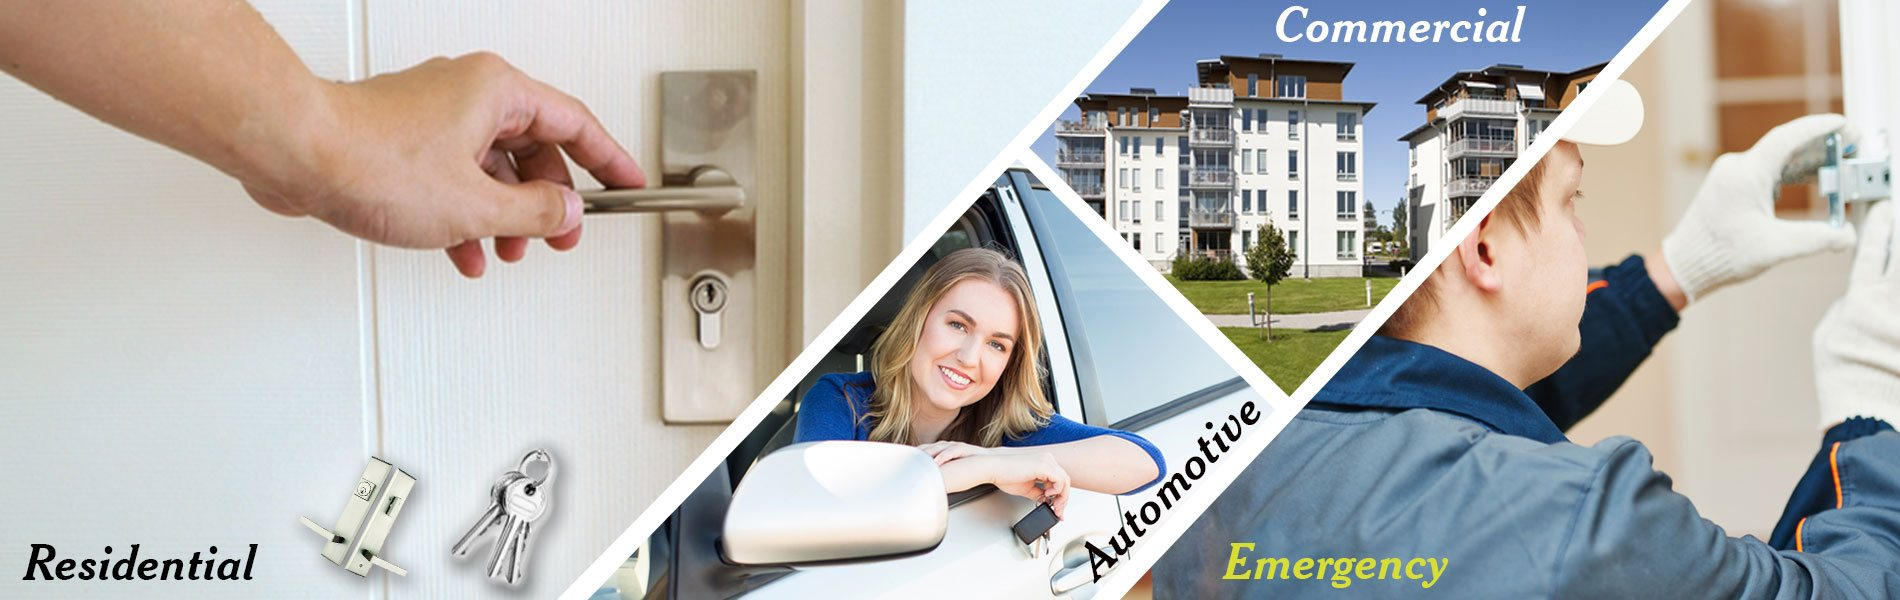 Safe Key Locksmith Service Brice, OH 614-376-4003